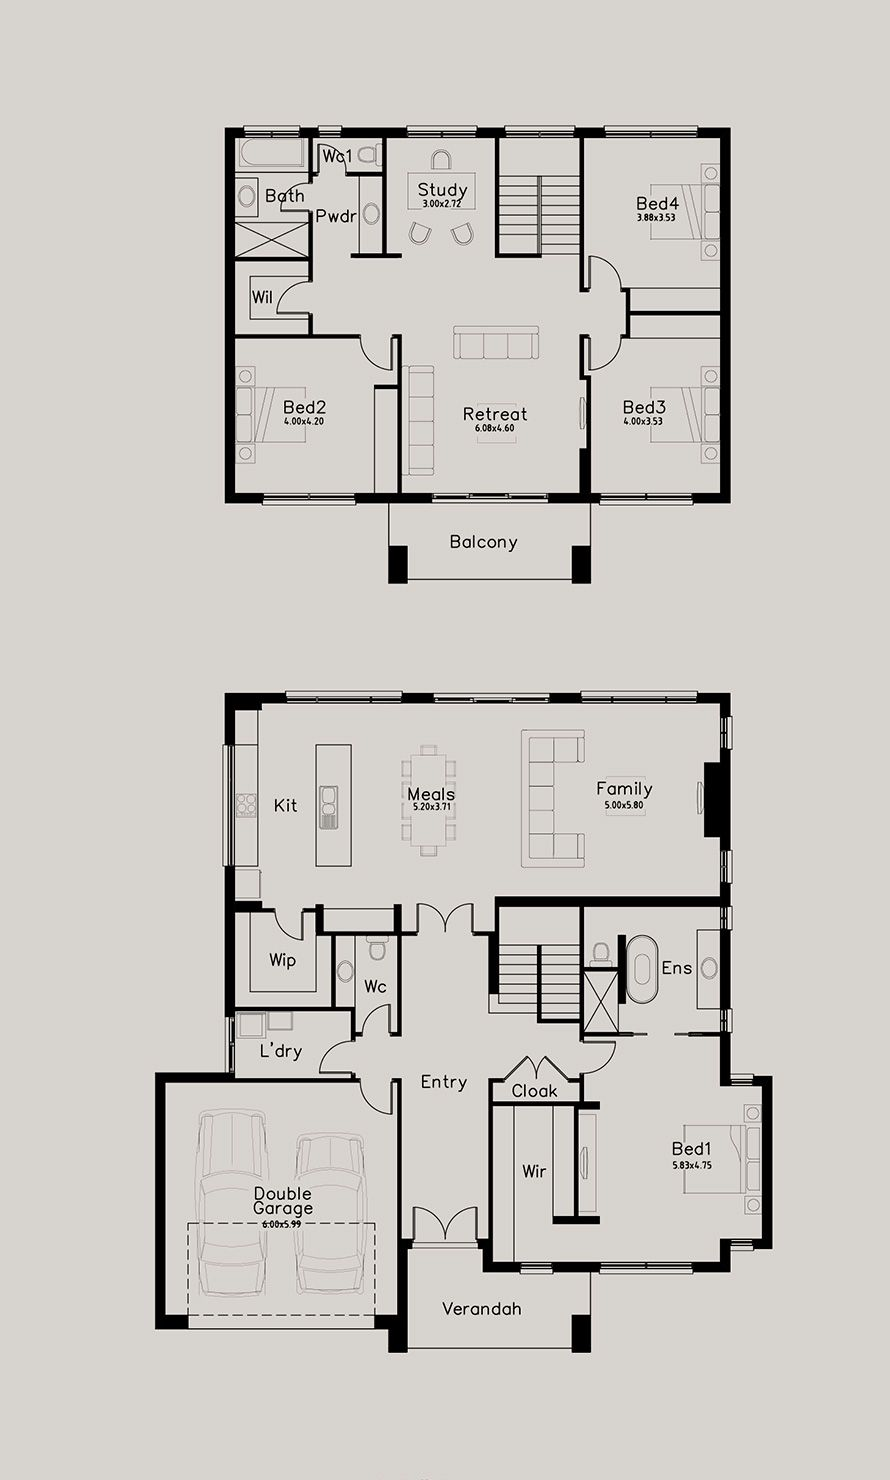 Highmore Dechellis Homes Two Storey House Plans Home Design Floor Plans My House Plans